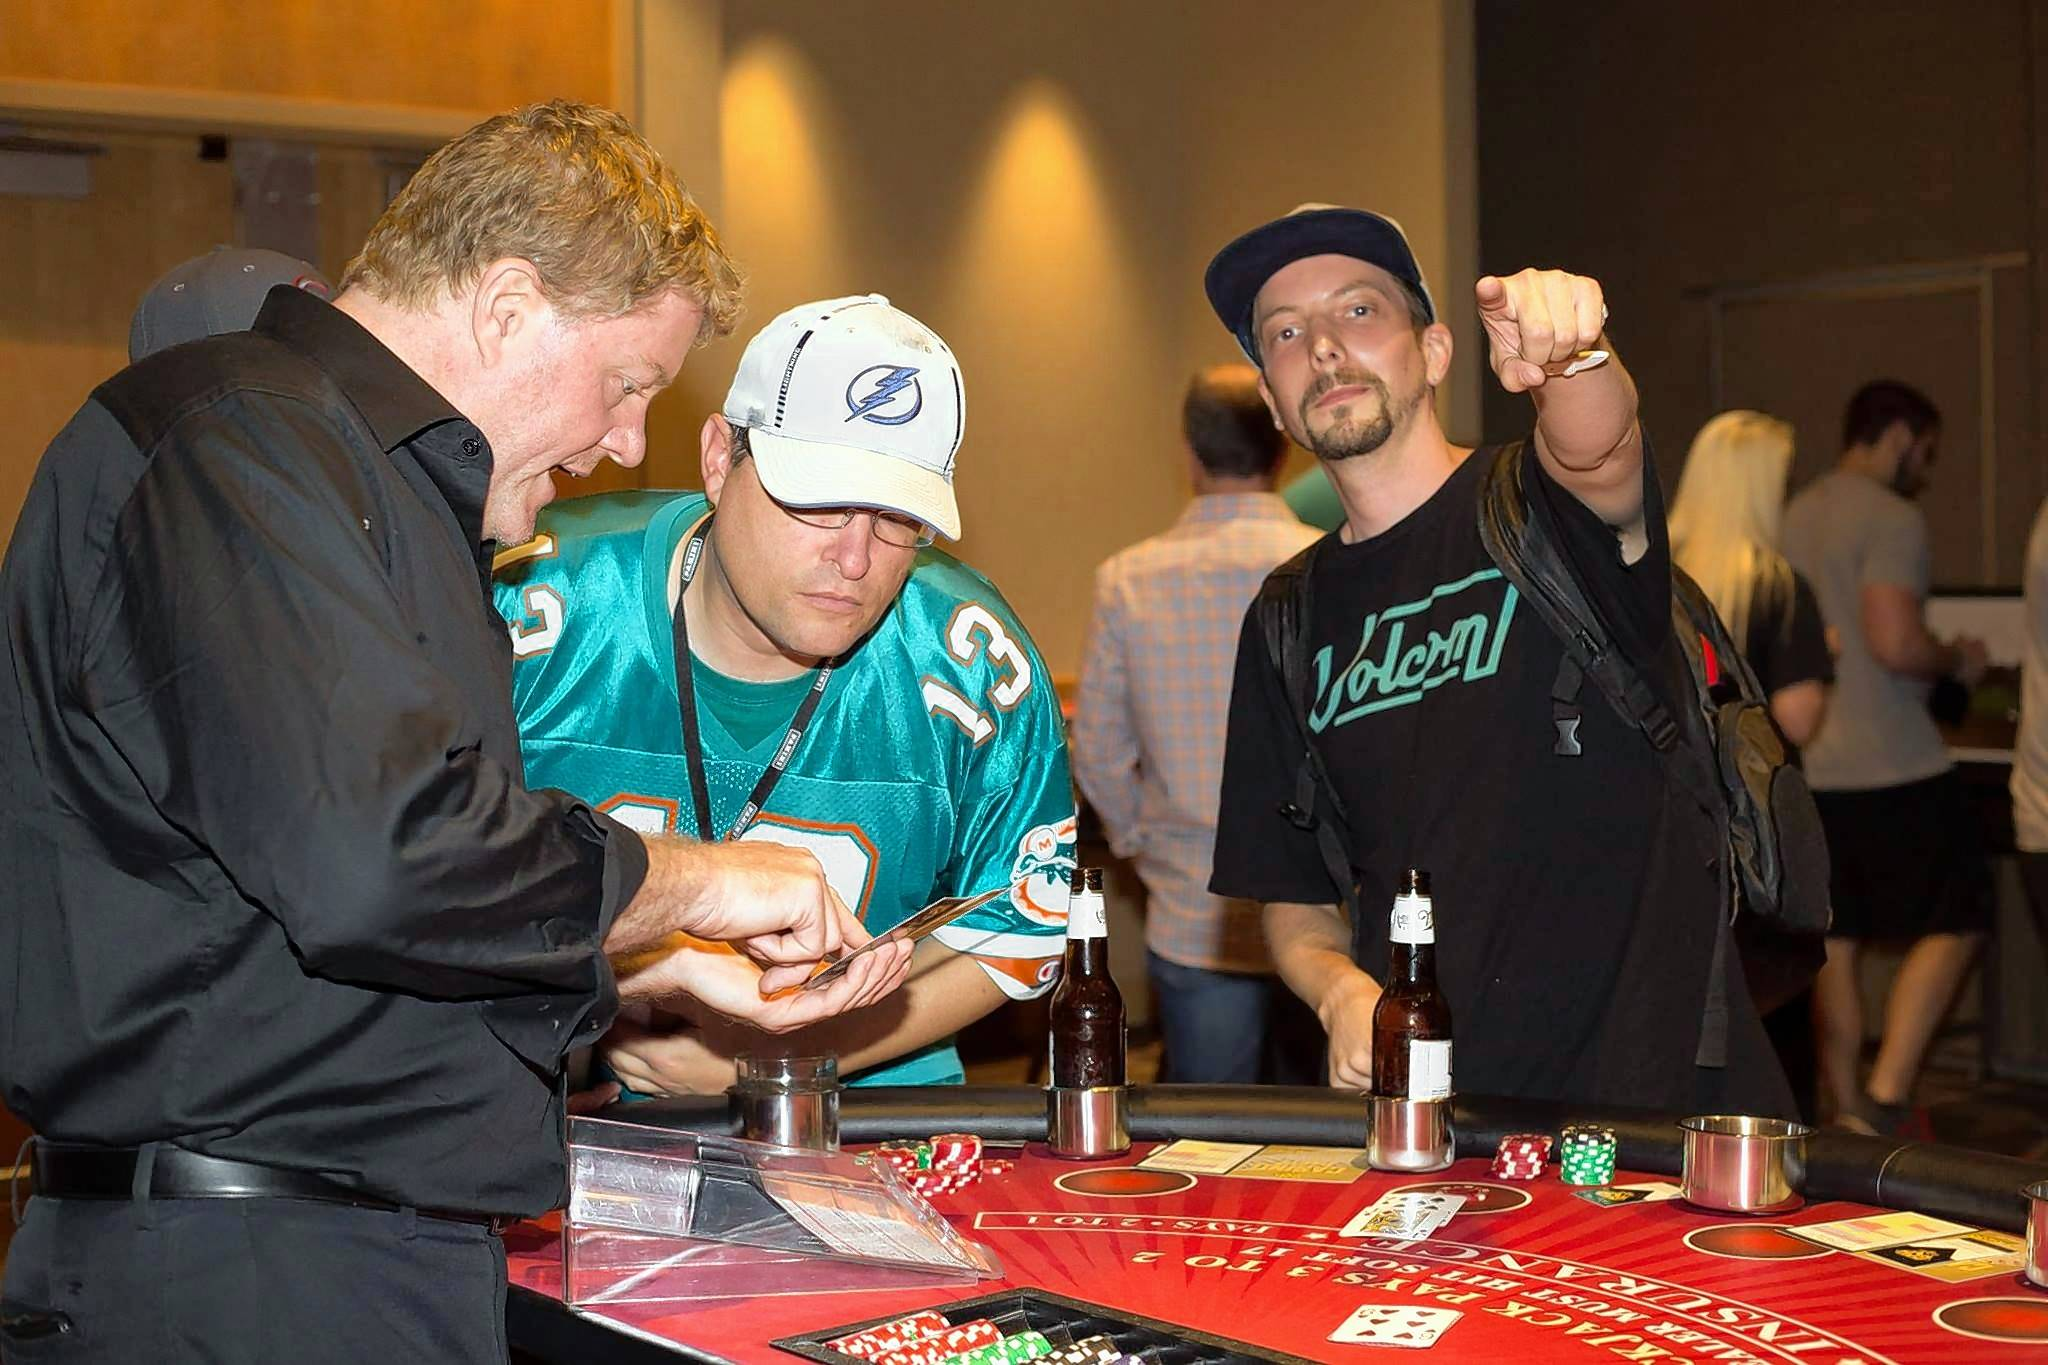 GSH Casino Parties specializes in bringing the games of the Vegas strip to any location, including clients' homes.